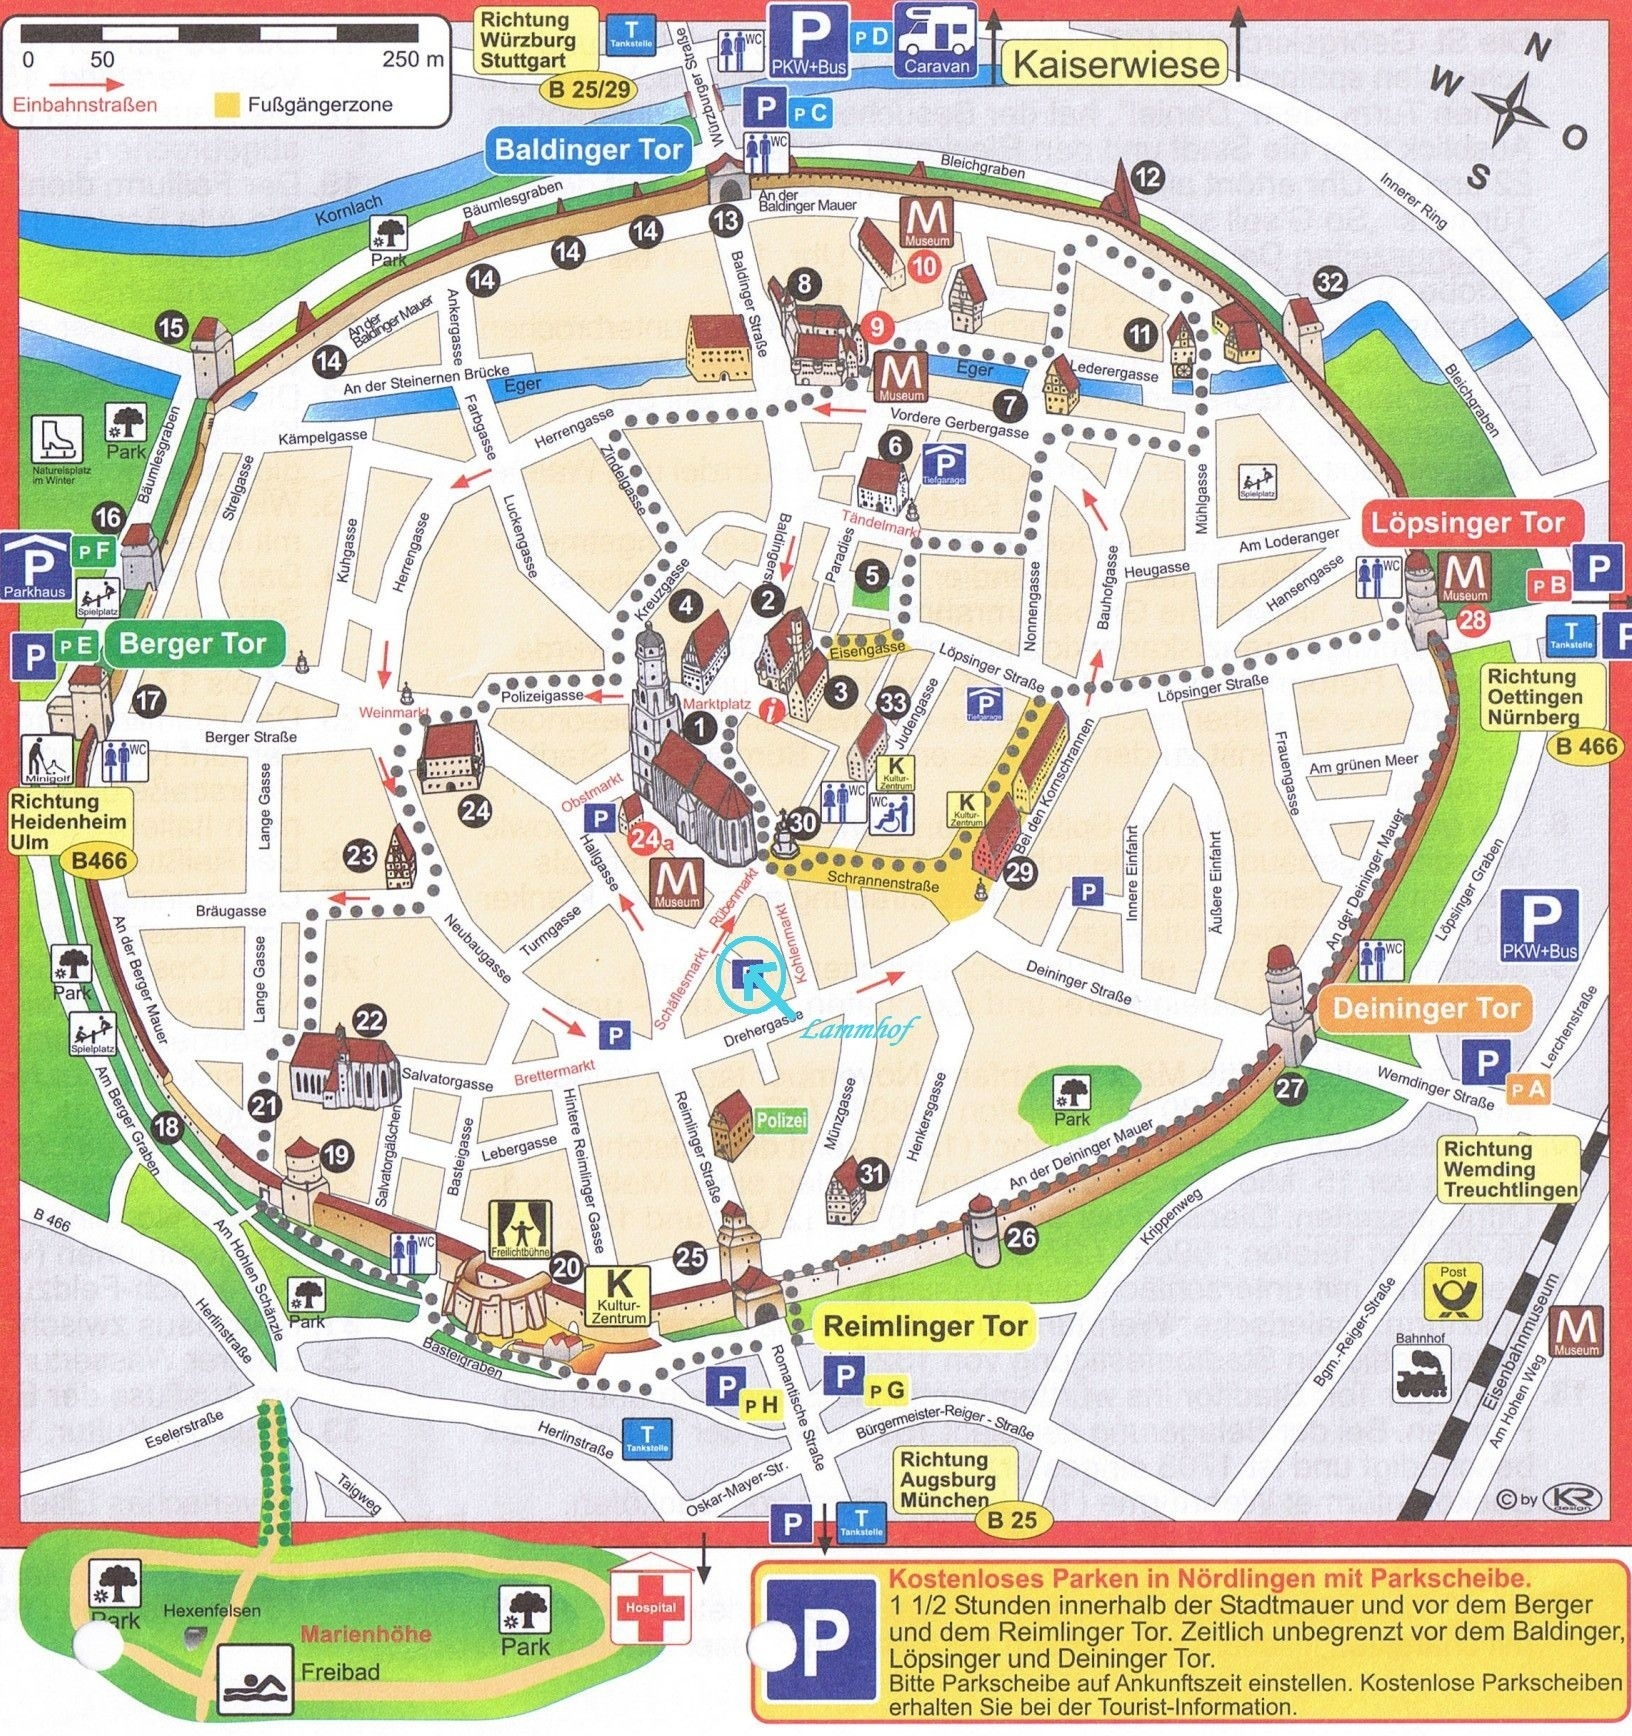 Munich Map   Euro Tour   Tourist Map, Road Trip Map, Romantic Road pertaining to Munich Germany Map Attractions